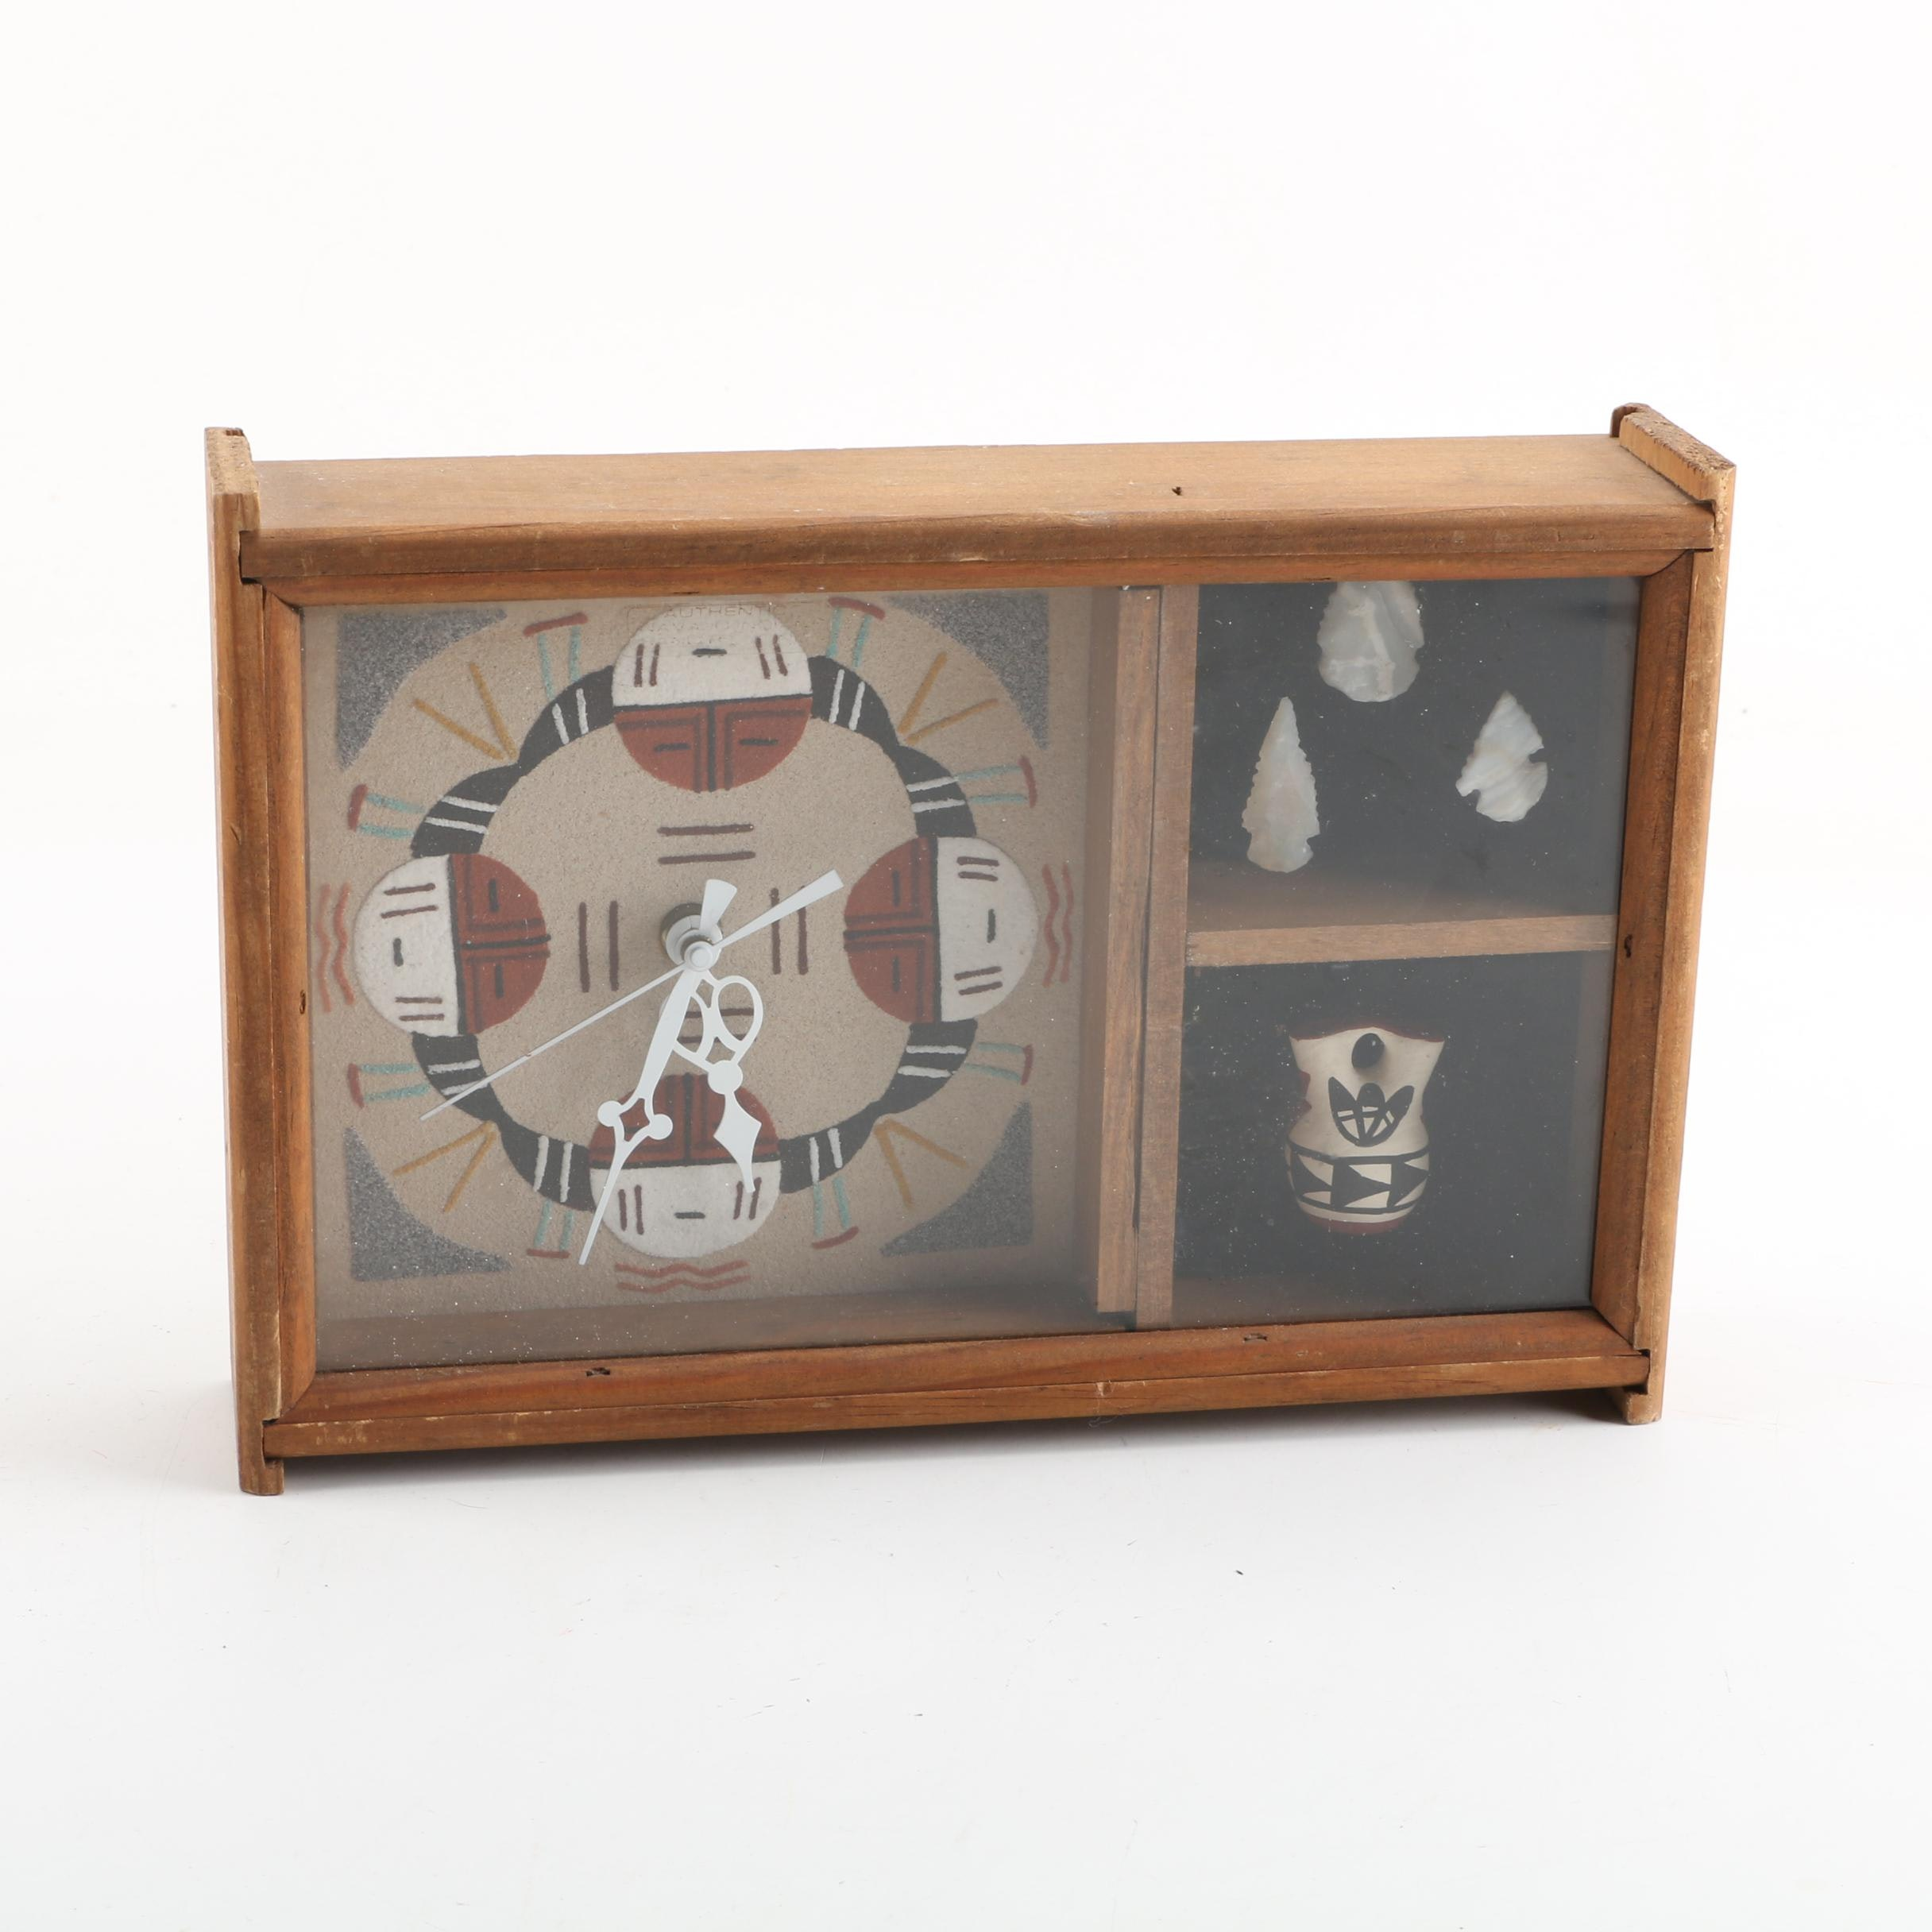 Navajo Style Sand Painting Clock with Replica Arrow Heads and Wedding Vase